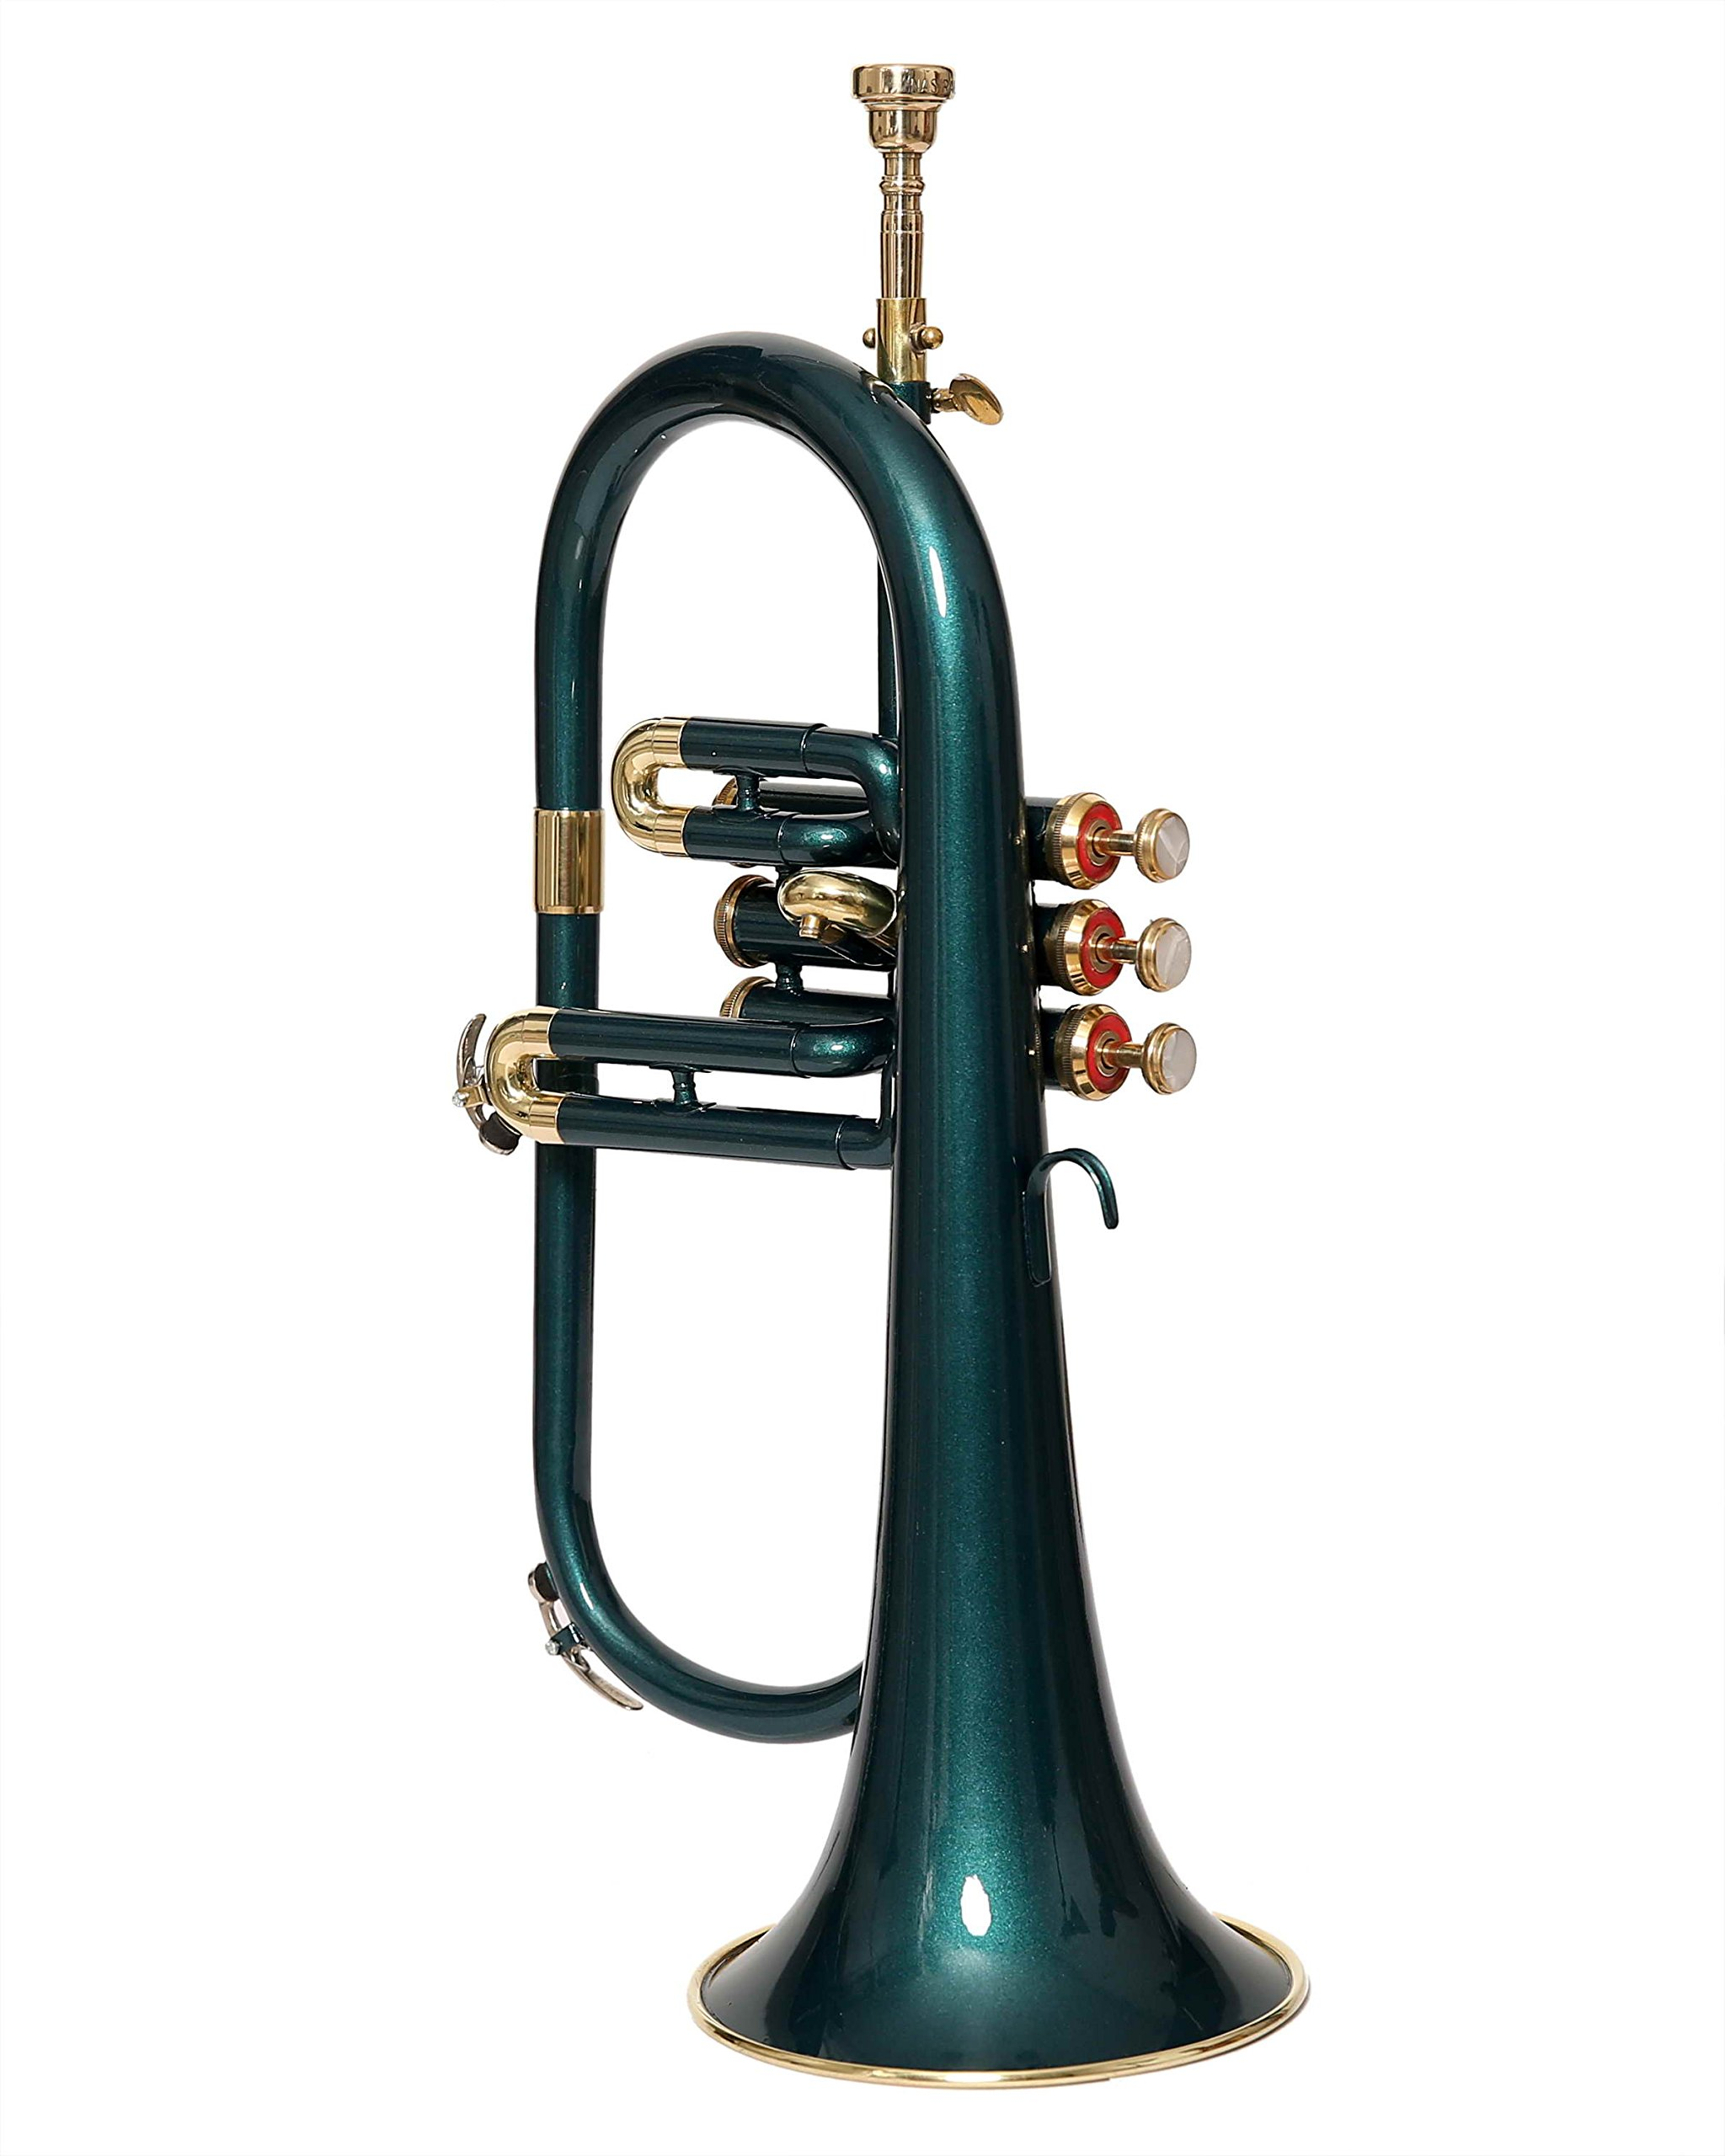 Moonflag eMusicals Flugel Horn Bb Pitch With Free Hard Case And Mouthpiece, Green Lacquered by NASIR ALI (Image #4)